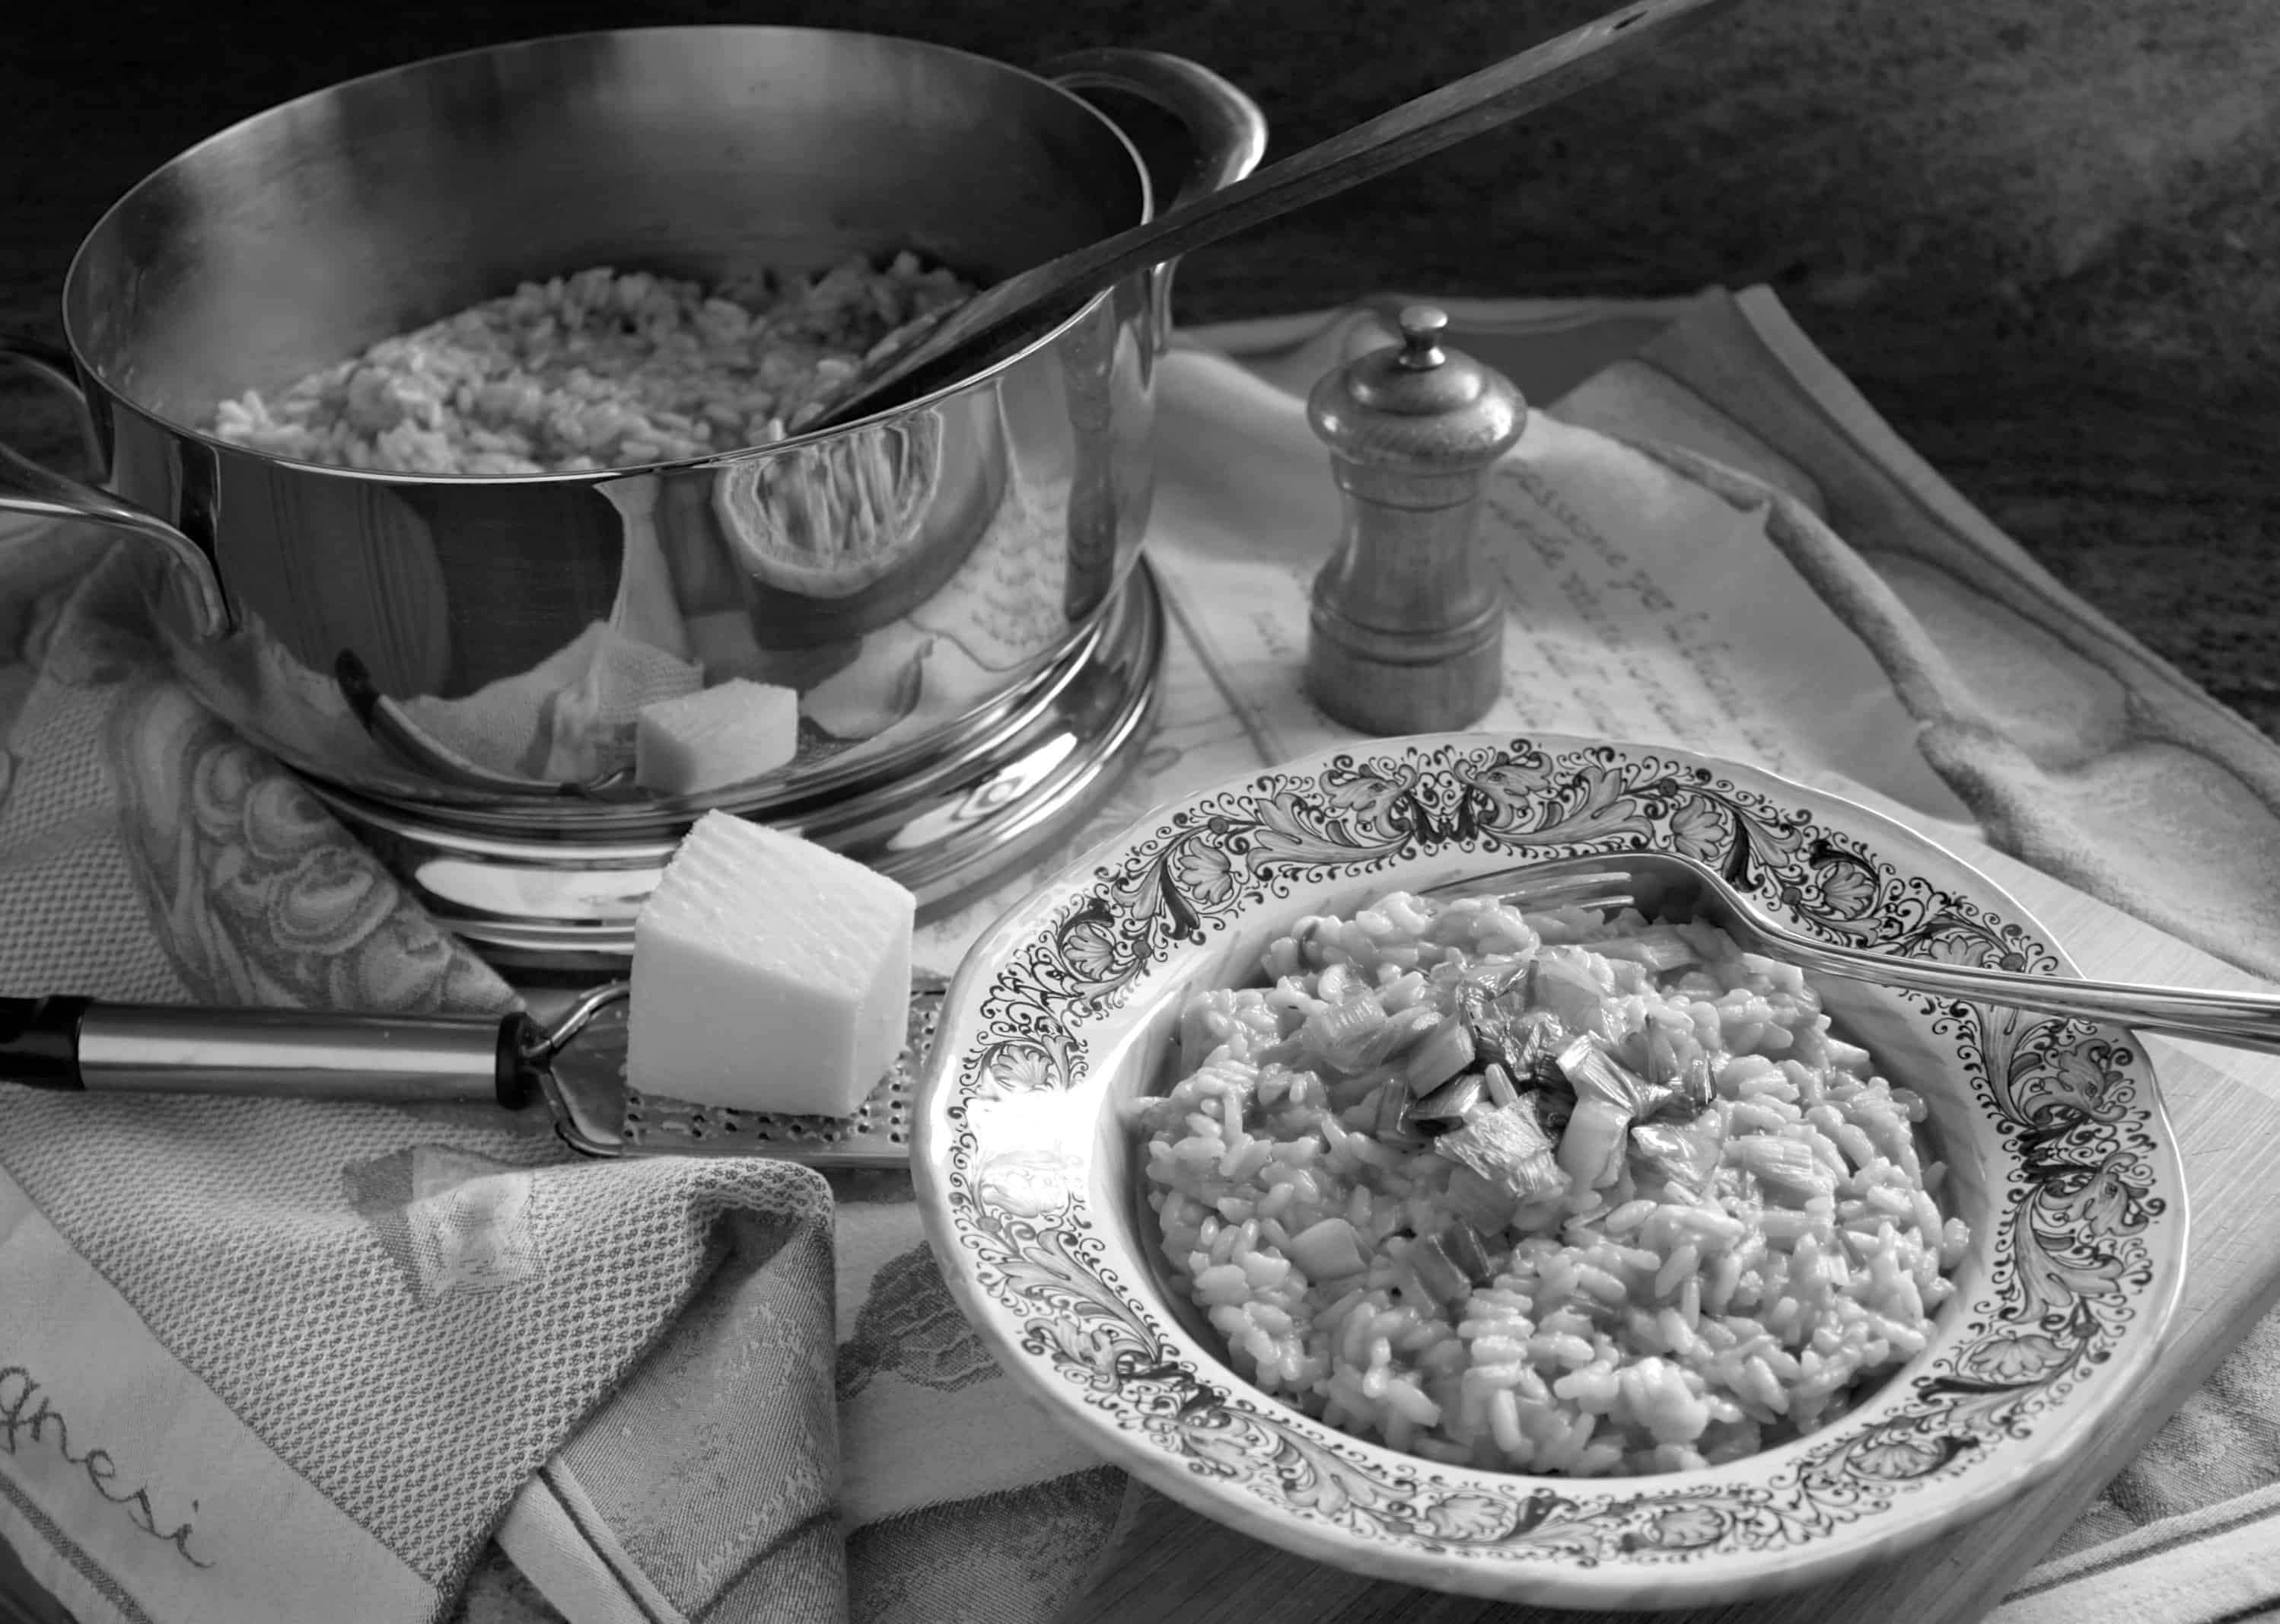 Lagostina review photo Risotto pot with risotto in a bowl